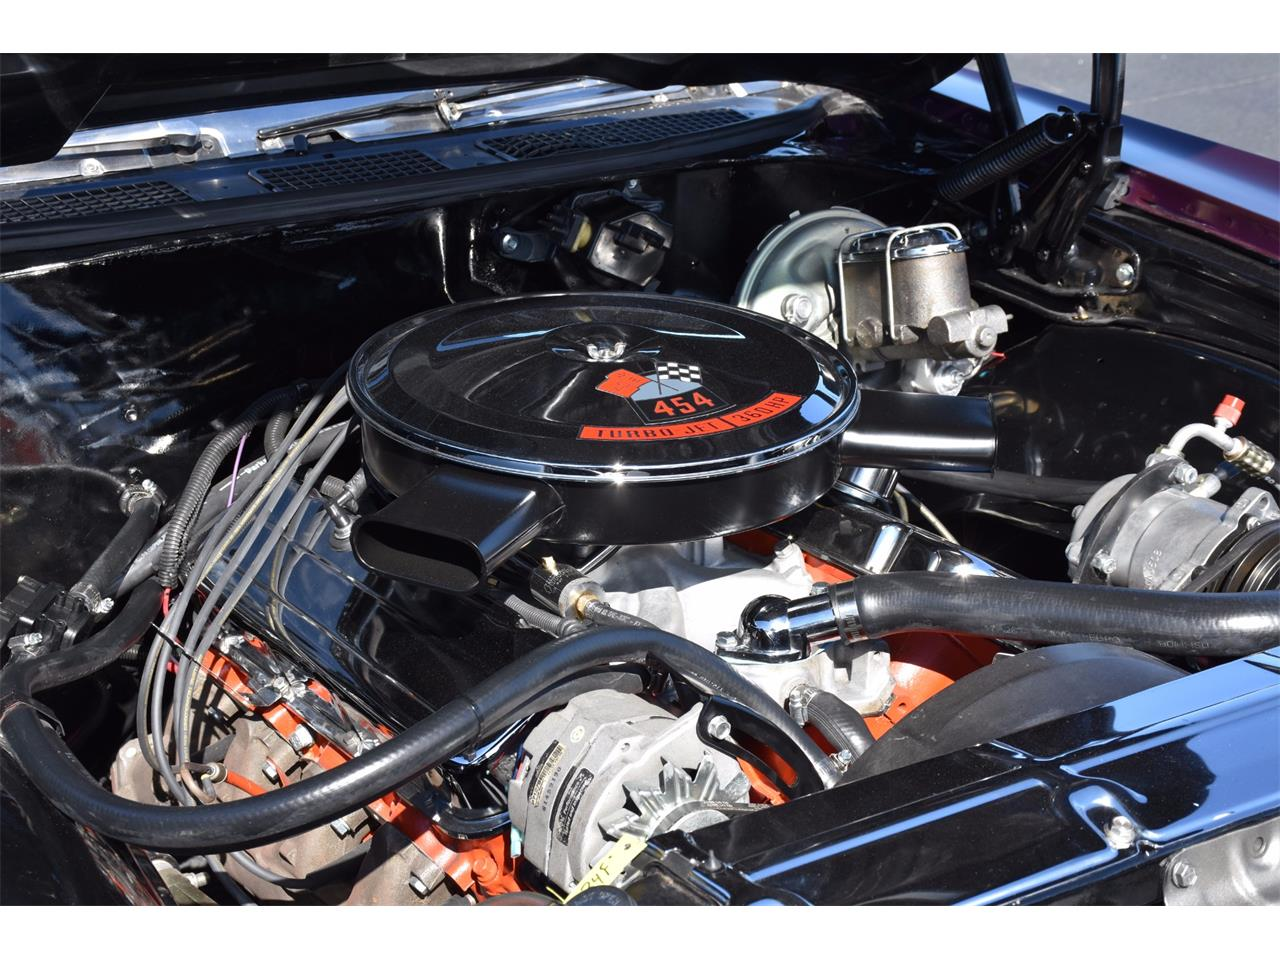 Large Picture of '70 El Camino Auction Vehicle Offered by Ideal Classic Cars - MDAK